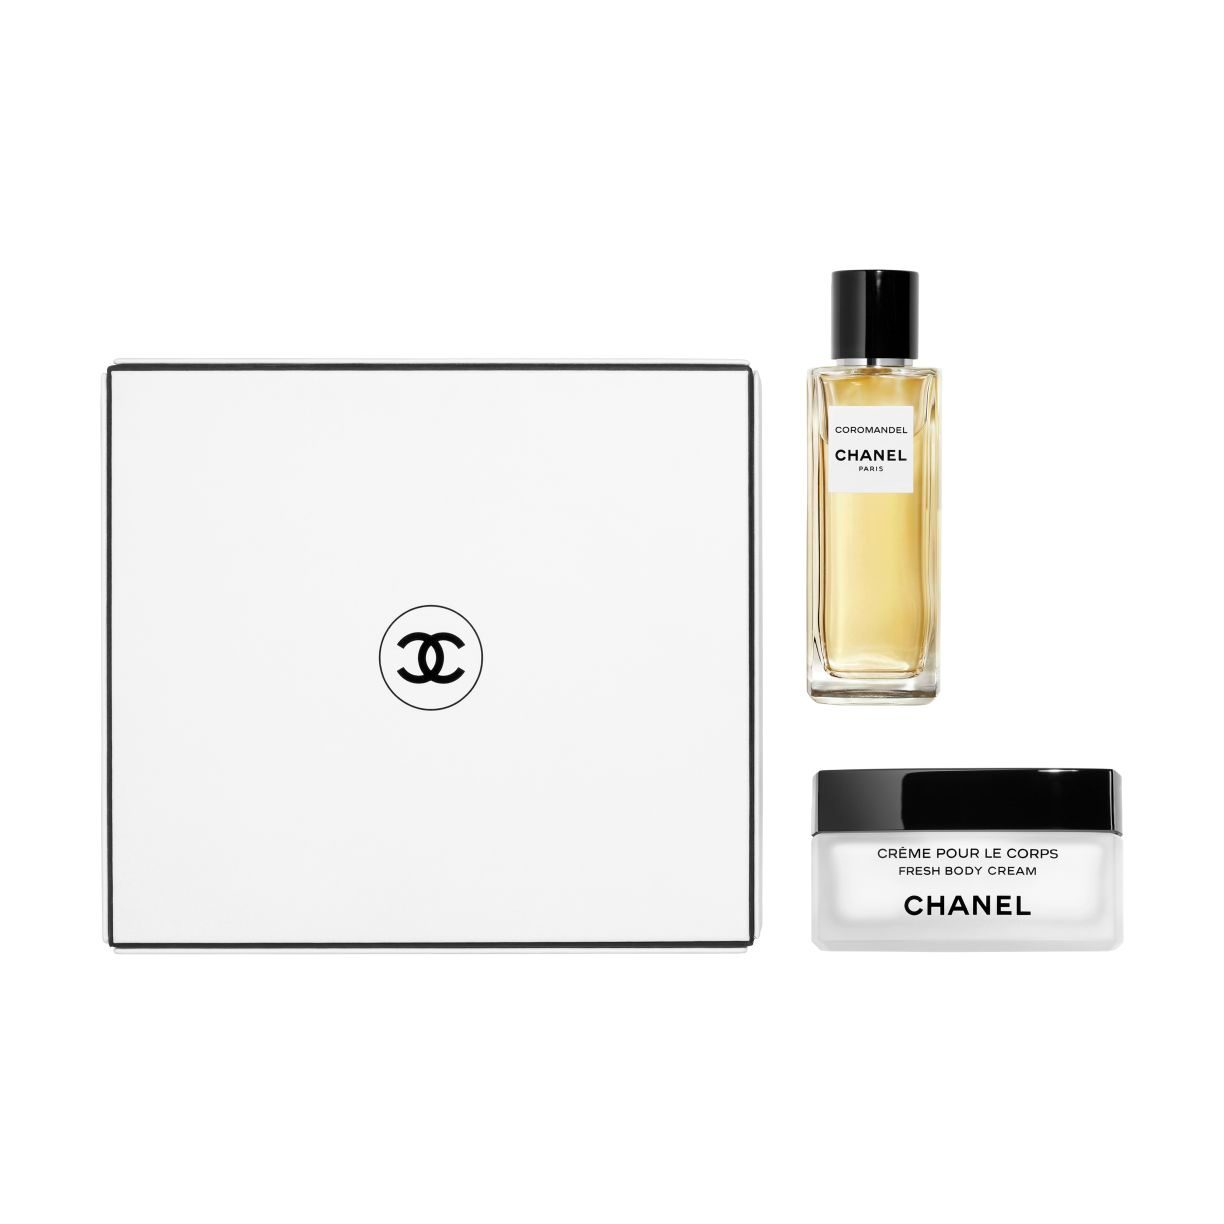 LES EXCLUSIFS DE CHANEL COROMANDEL EAU DE PARFUM 75 ML AND FRESH BODY CREAM COFFRET